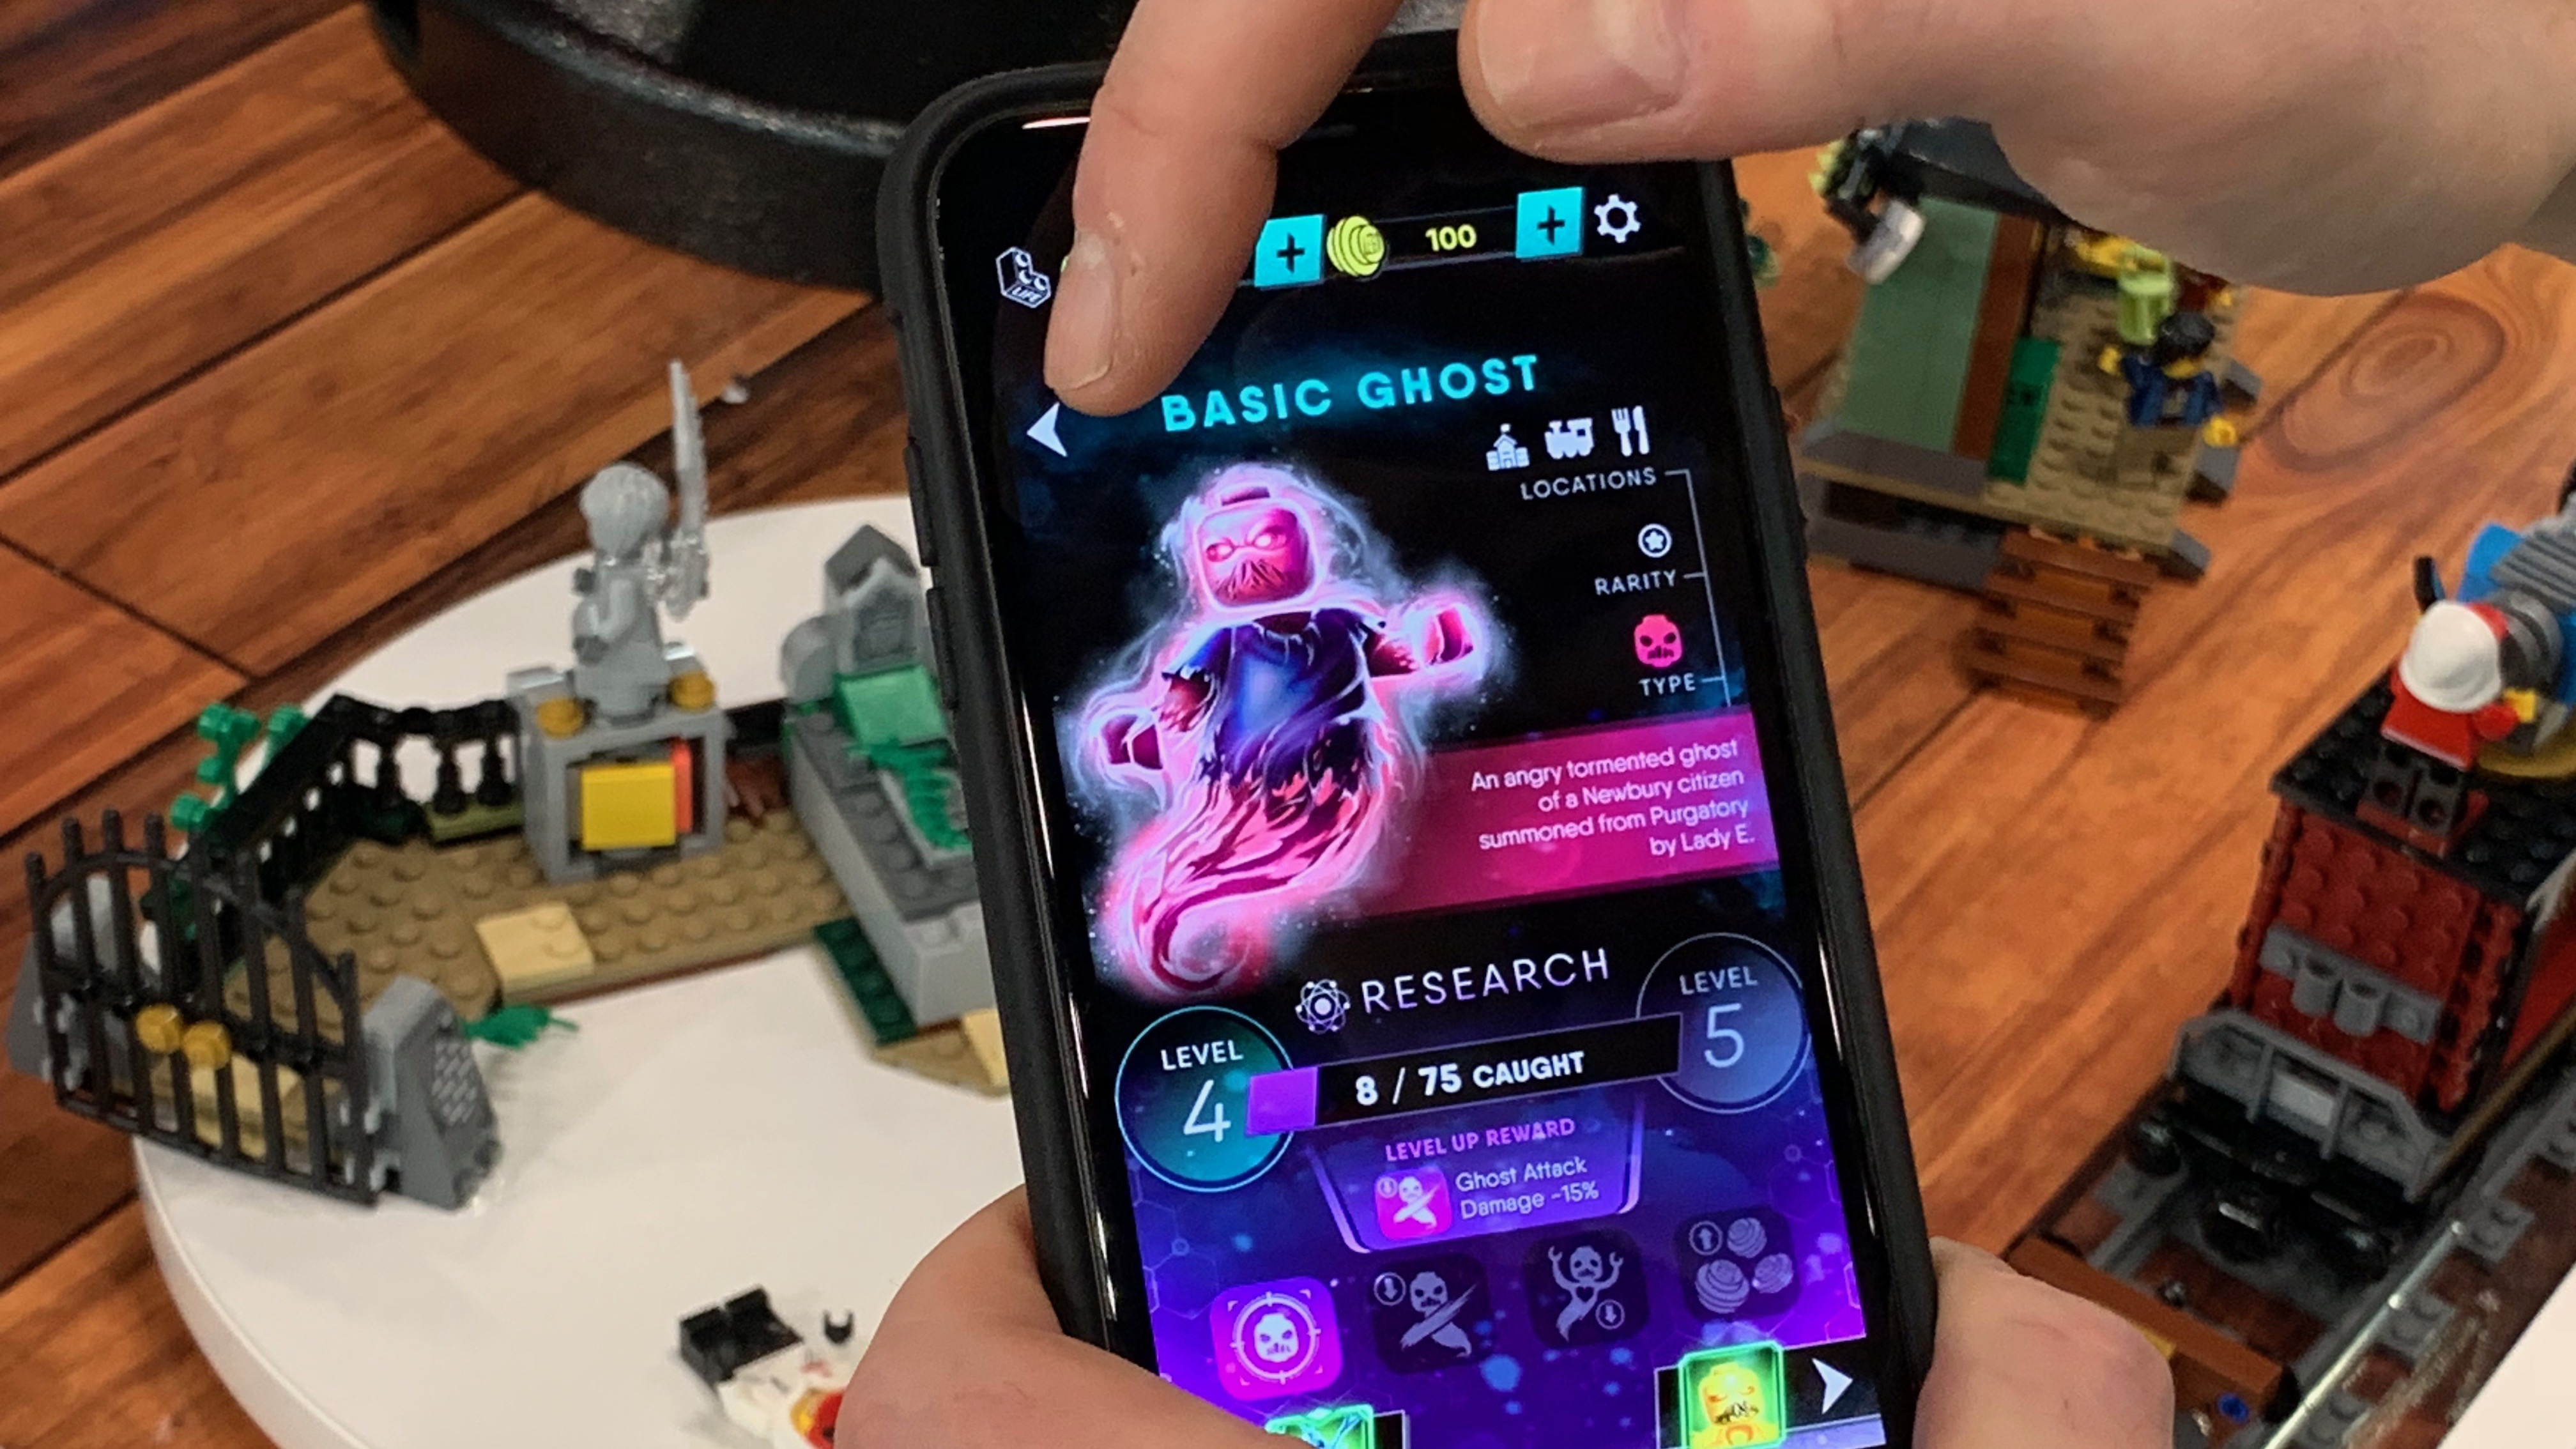 tF9BnTsrYgSEtrSRPuL3mf - Tech toys 2019: the best new games and gadgets from the NYC Toy Fair